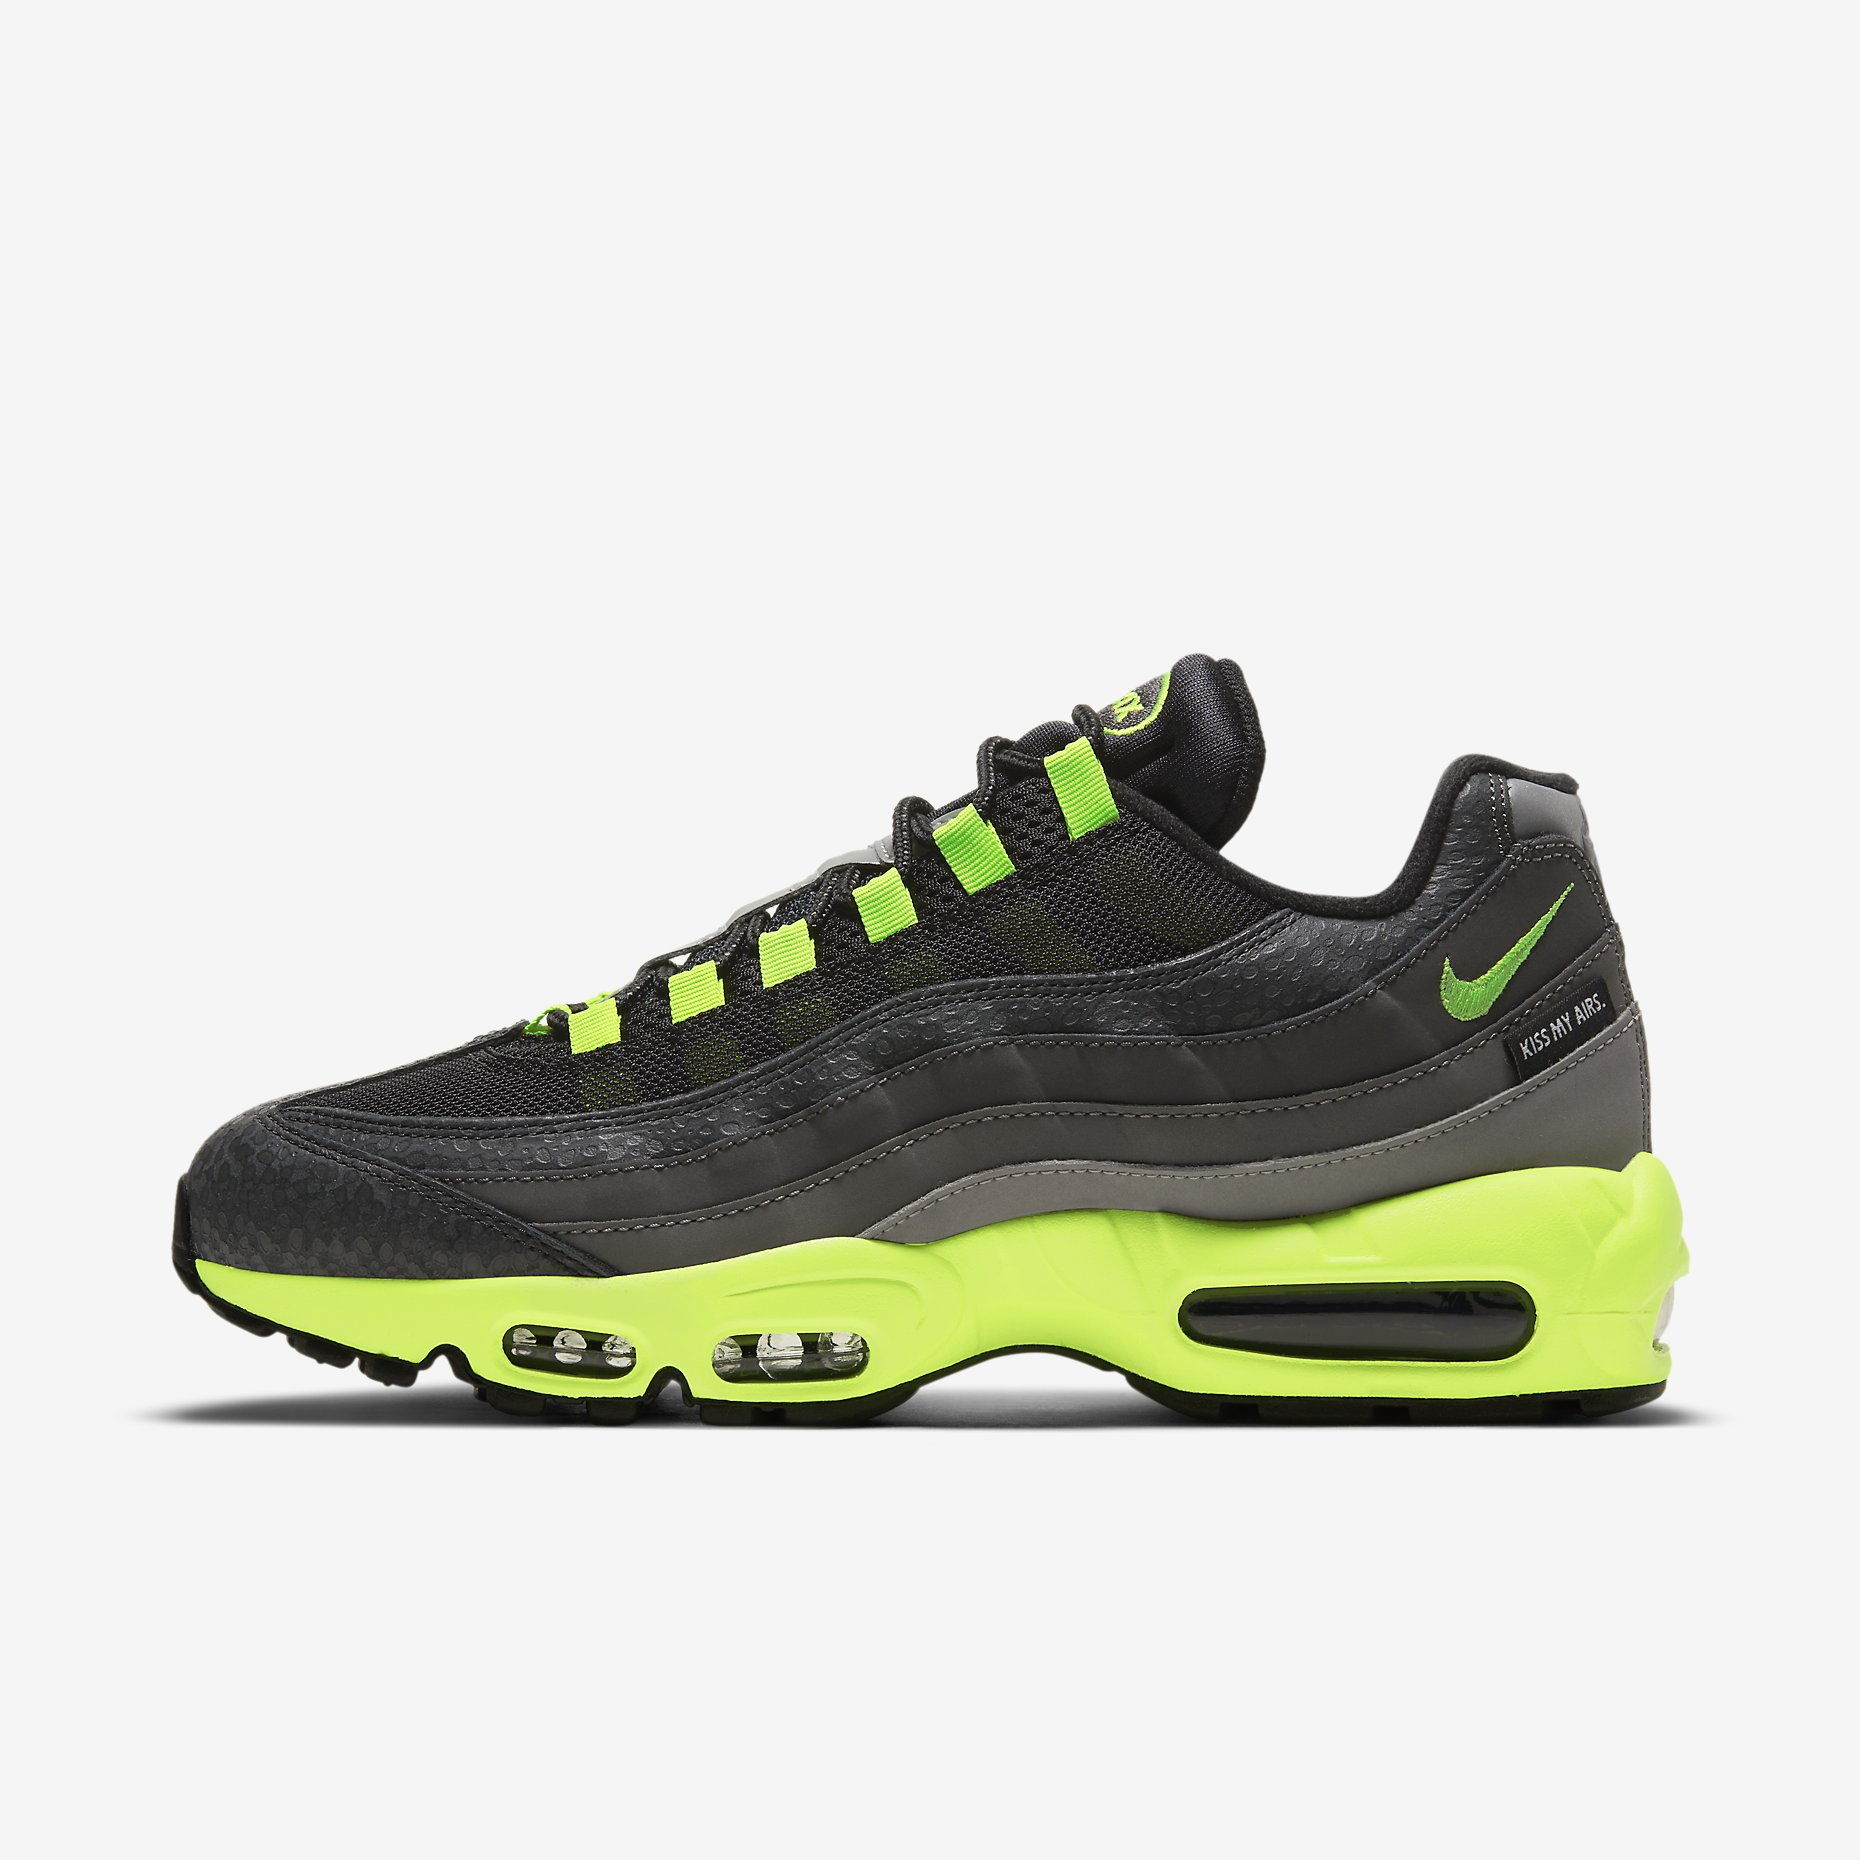 Nike Air Max 95 'Kiss My Airs'}